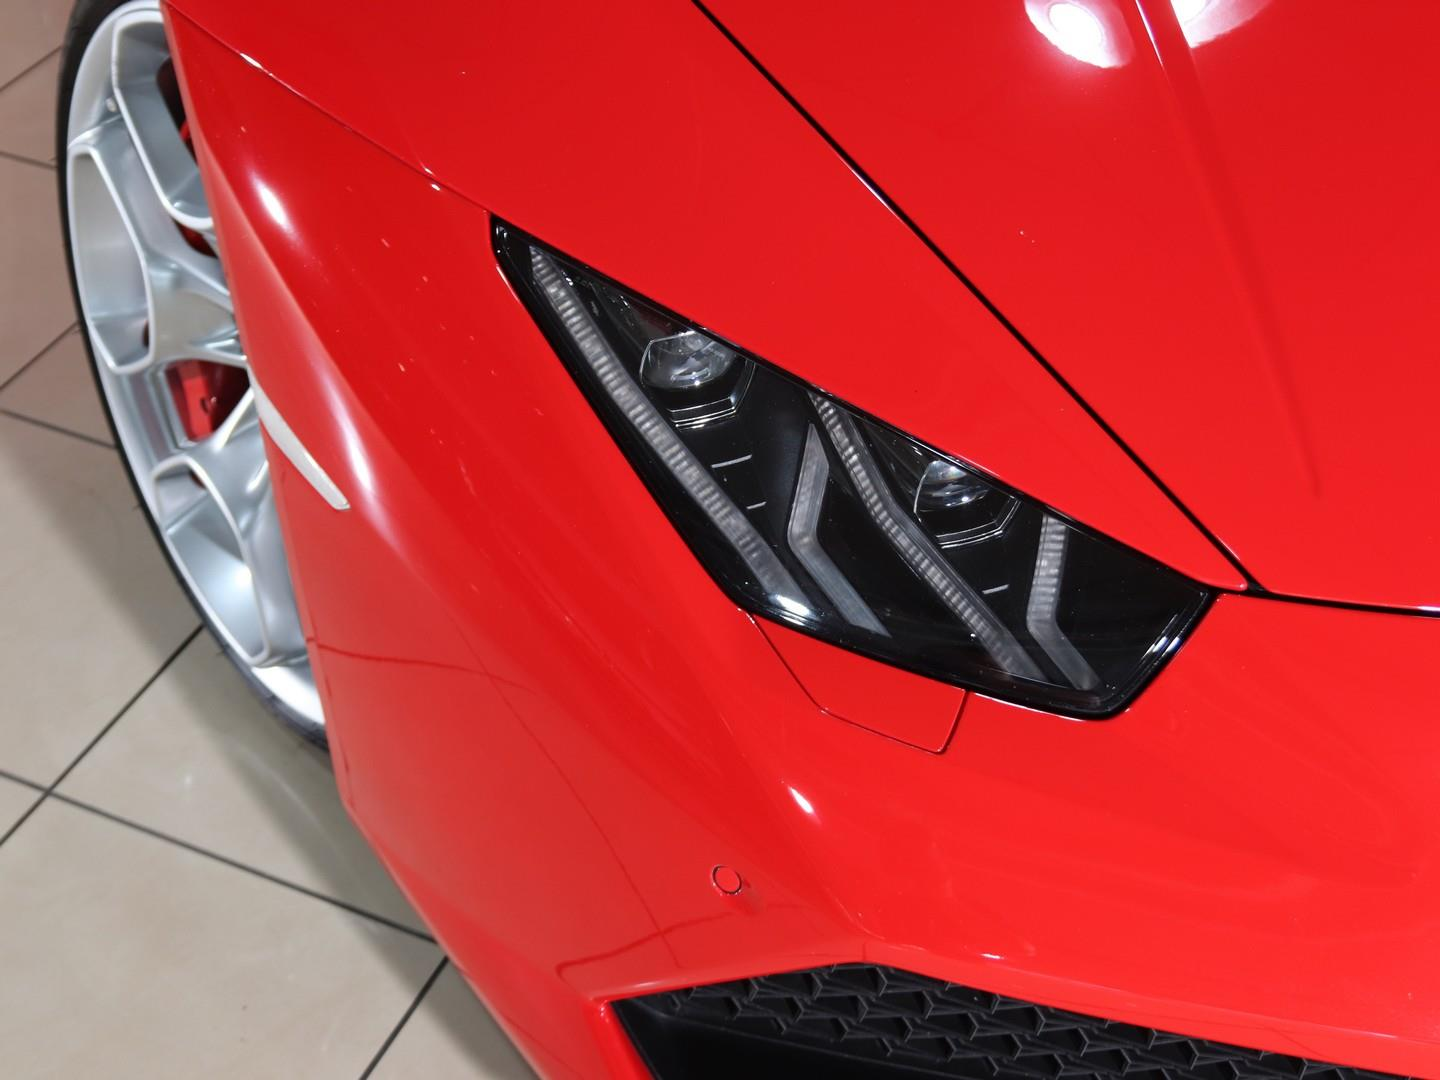 Lamborghini Huracan (LP610-4 Coupe) at Speedy Car Sales